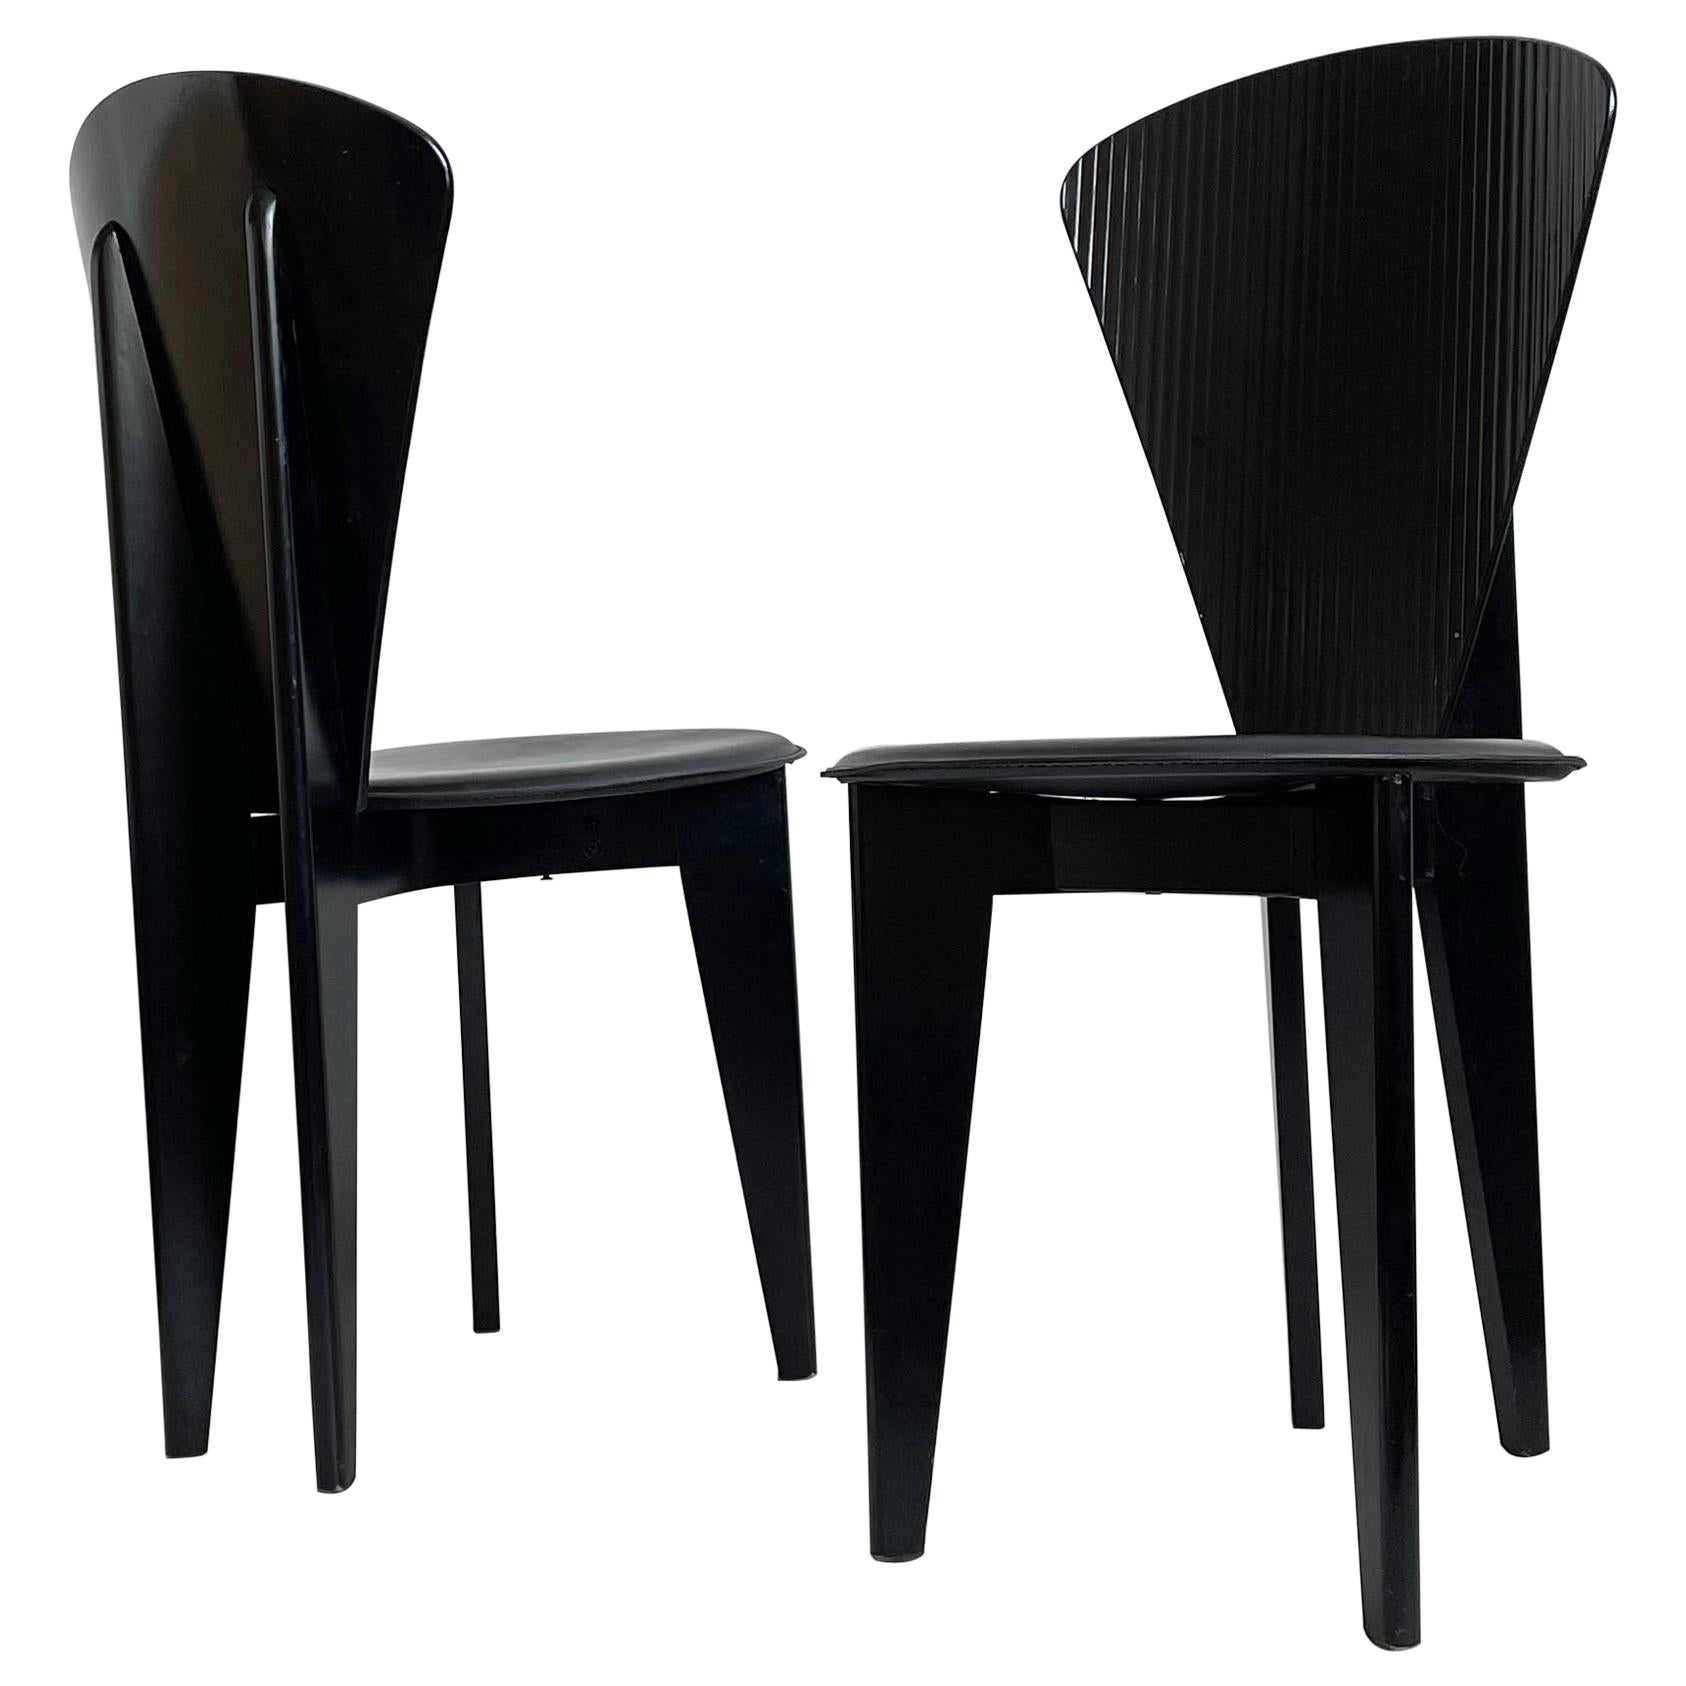 Postmodern Italian Calligaris Dining Chairs, Black Leather and Wood, 1980s